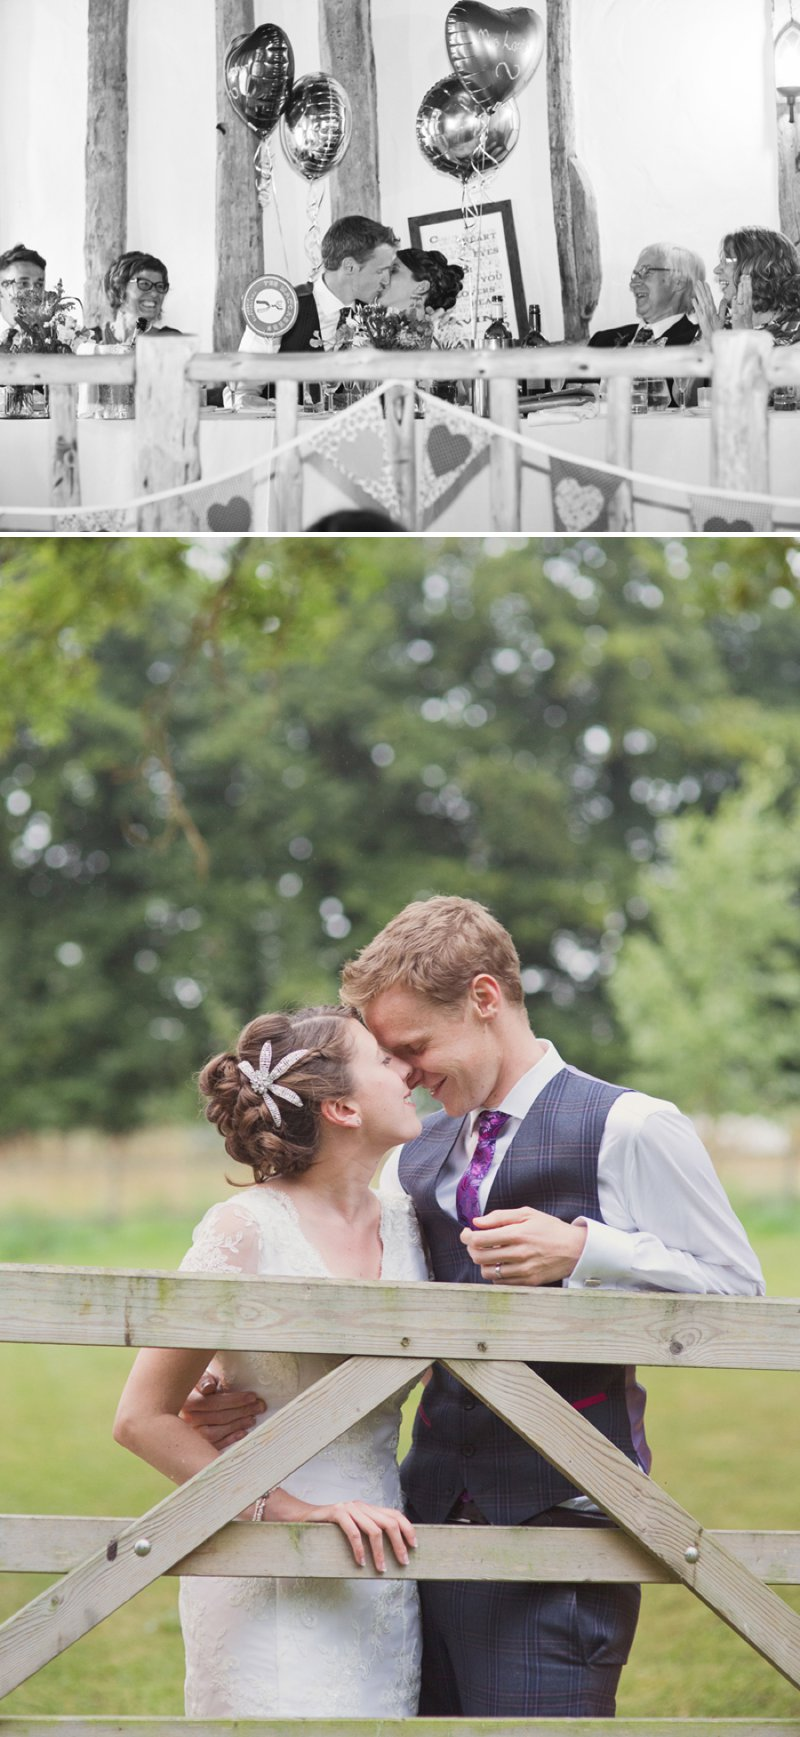 A Rustic Wedding At The Crown Inn Pishill With Bride In Bespoke Lace Gown And Groom In Tweed Suit From Clements And Church With Bunting And An Vintage VW Campervan Images From Cotton Candy Wedding Photography 10